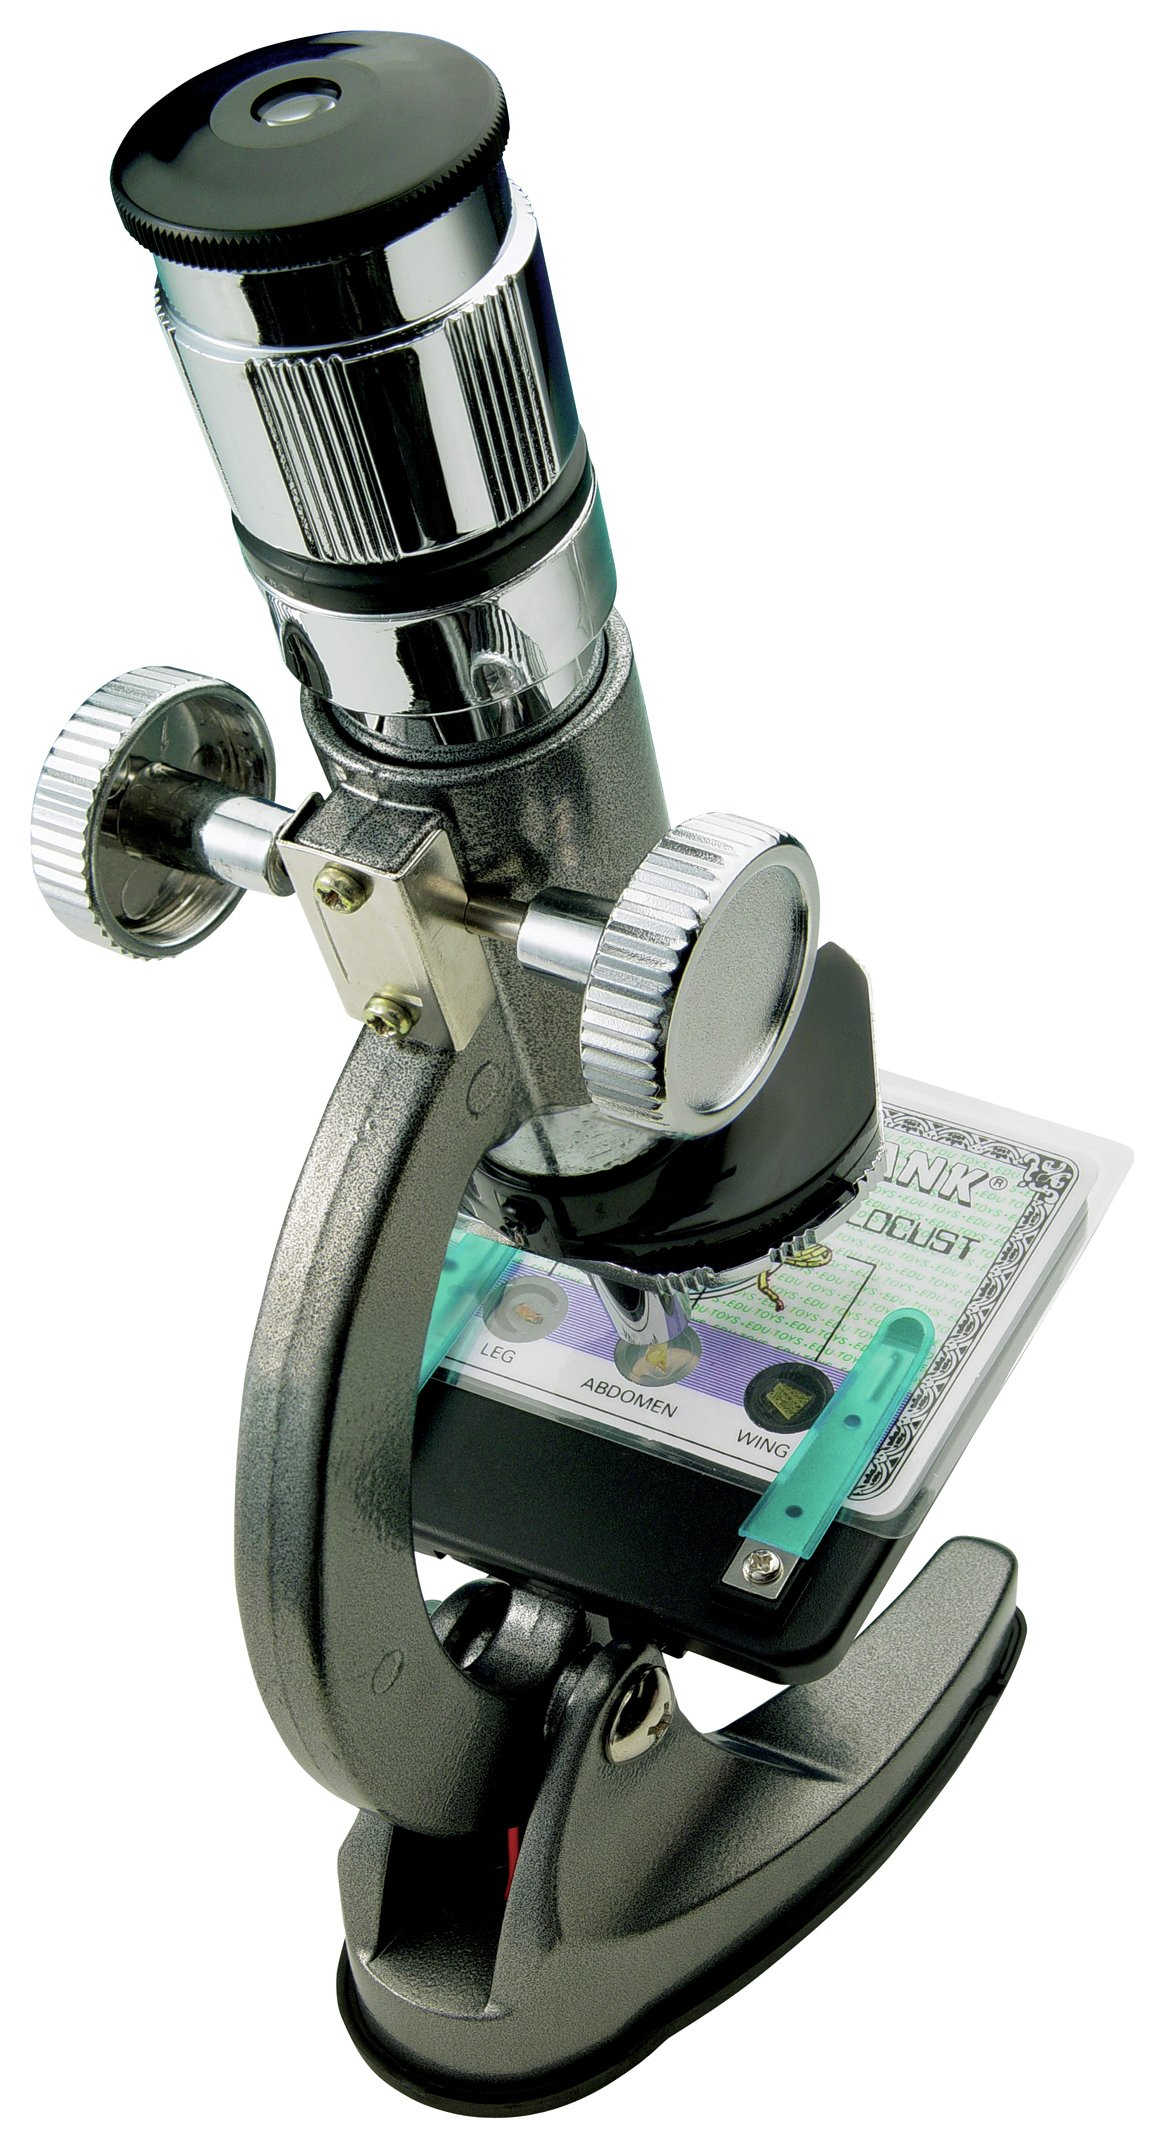 Image of EduScience 100x to 900x Zoom Diecast Microscope Set.